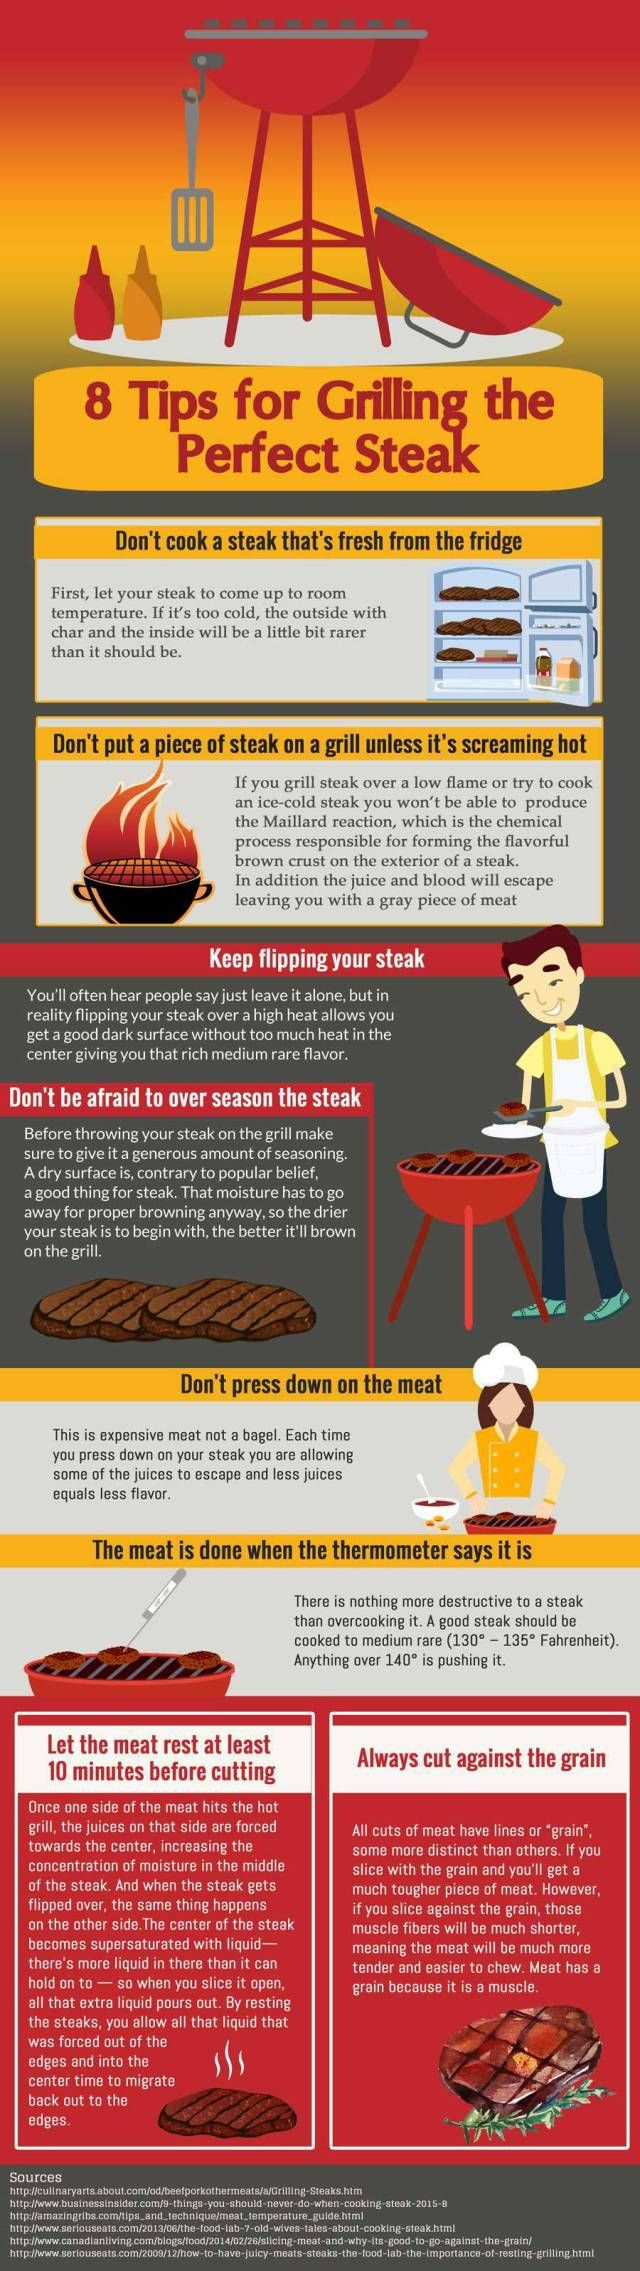 How To Grill The Perfect Steak (infographic)